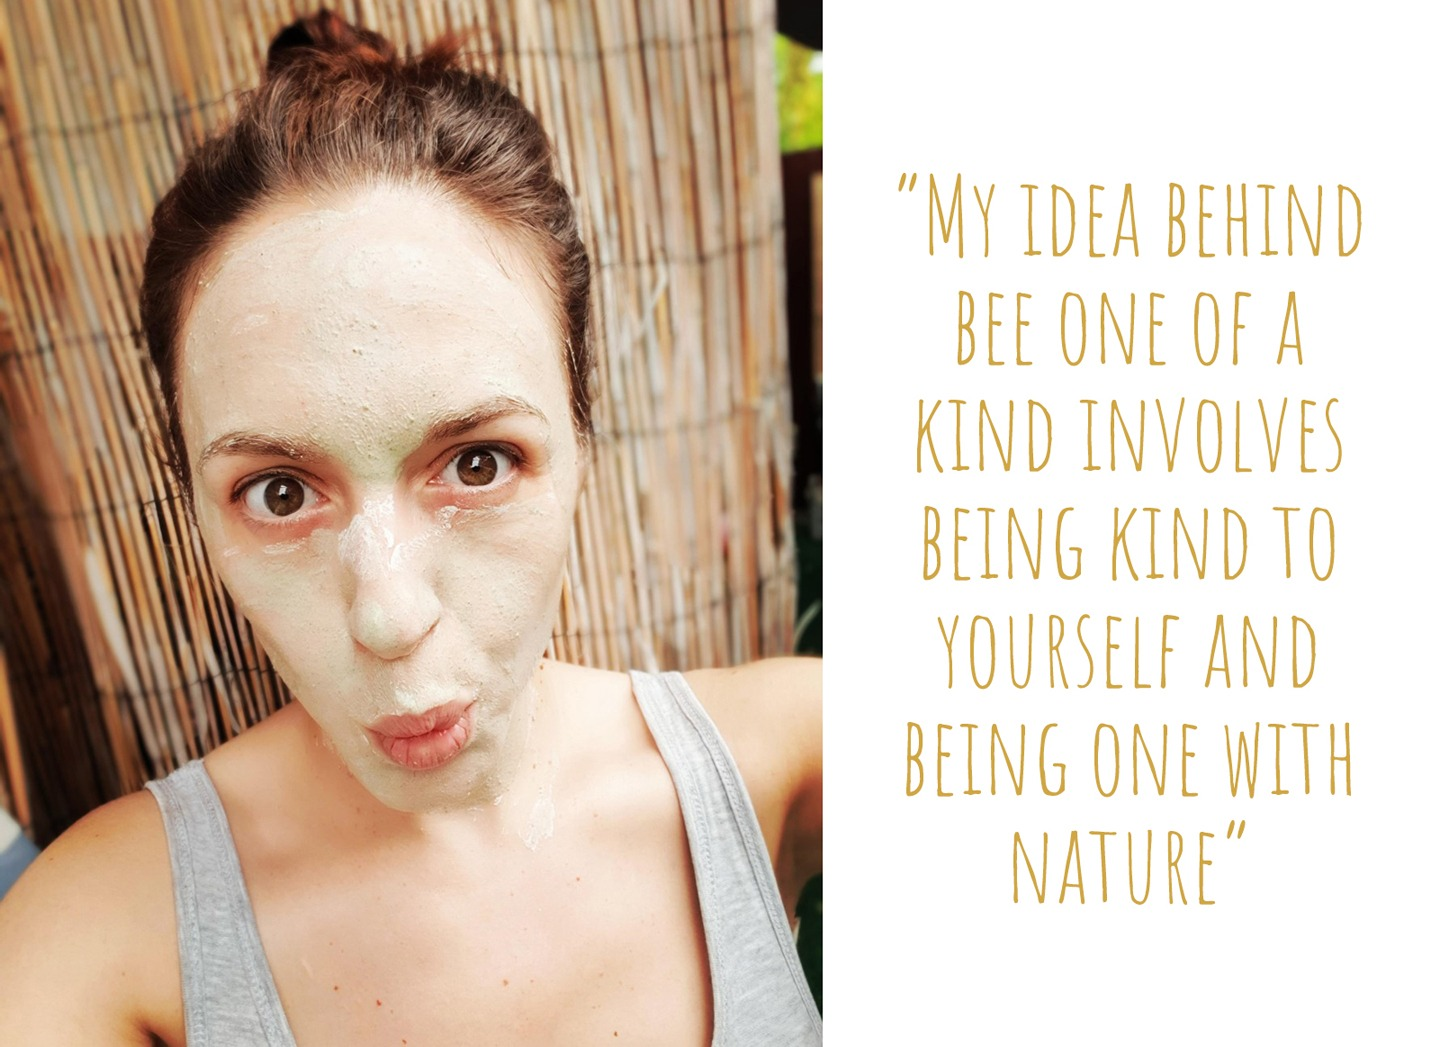 Melissa sporting one of her own natural handmade face masks; 'My idea behind bee one of a kind involves being kind to yourself and being one with nature'